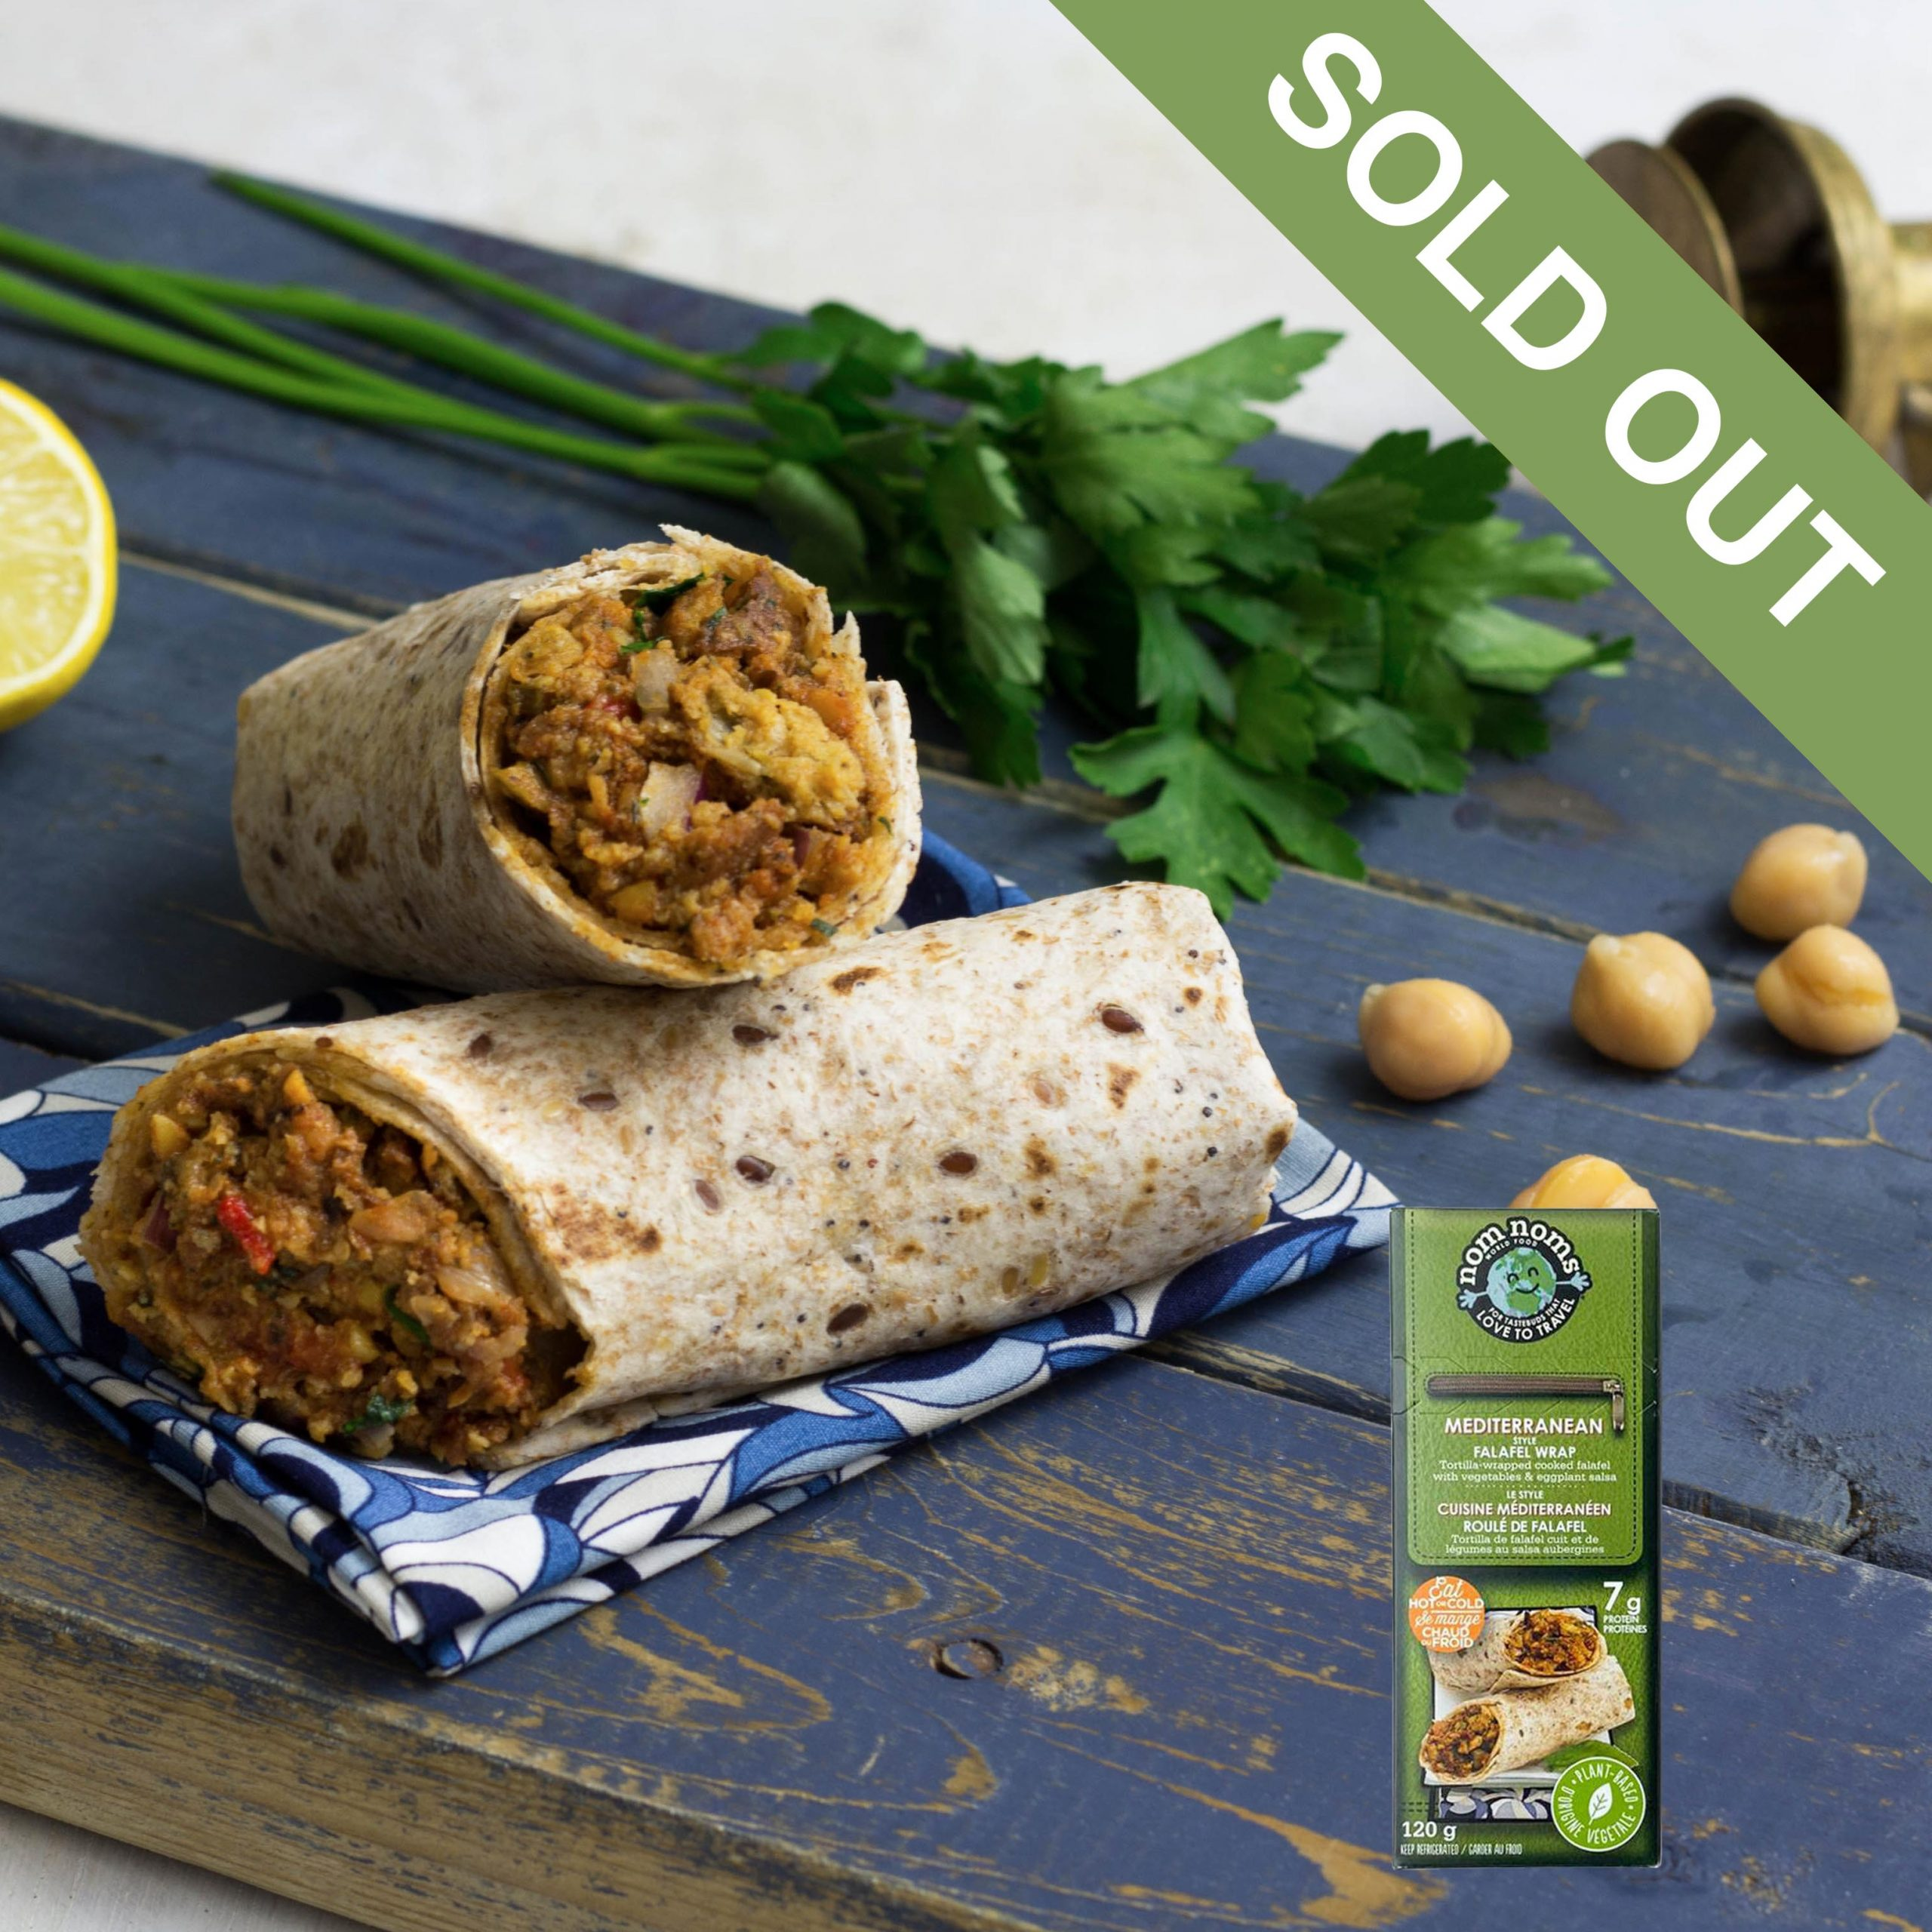 Mediterranean Falafel 4oz Feature Sold Out